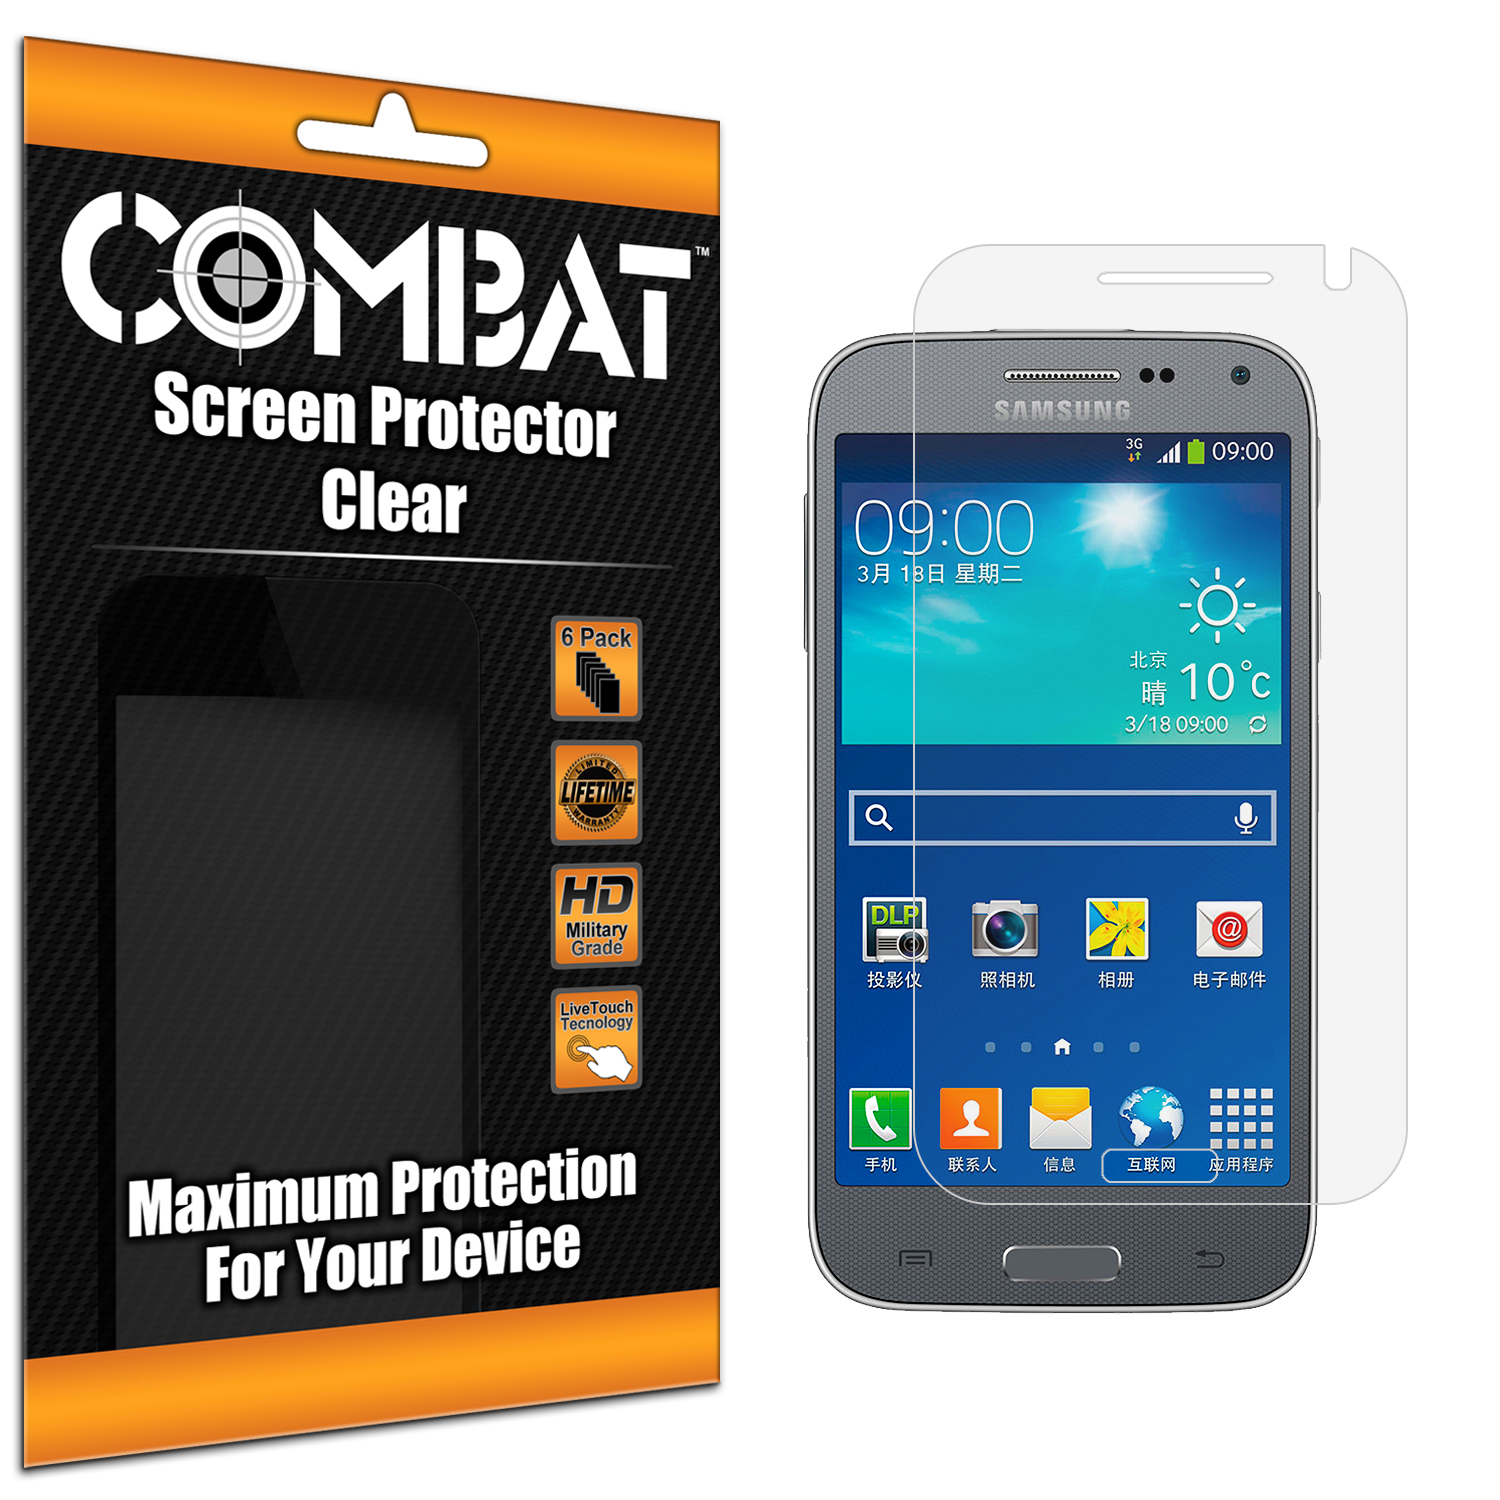 Samsung Galaxy Beam 2 Combat 6 Pack HD Clear Screen Protector